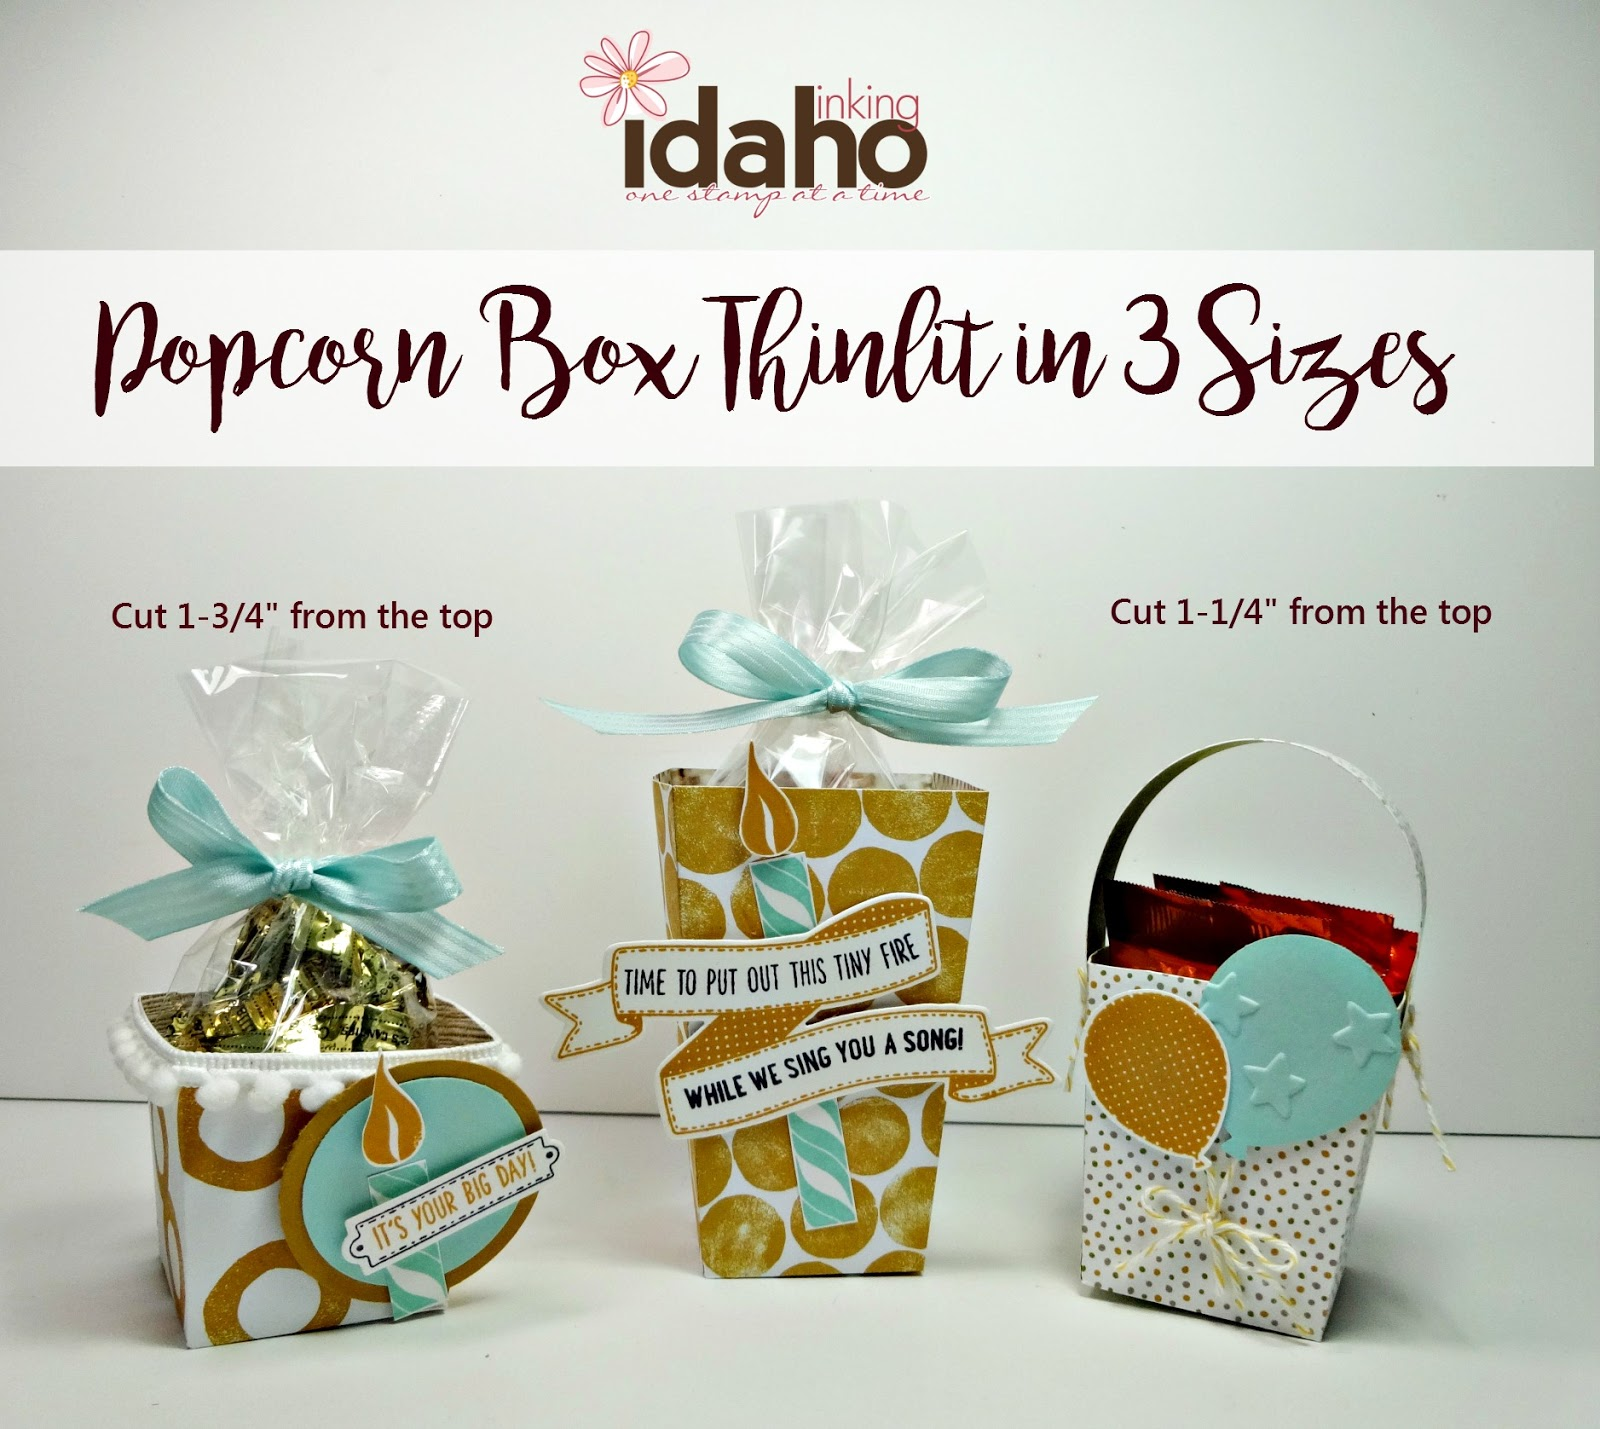 Inking Idaho: Popcorn Box in 3 Sizes